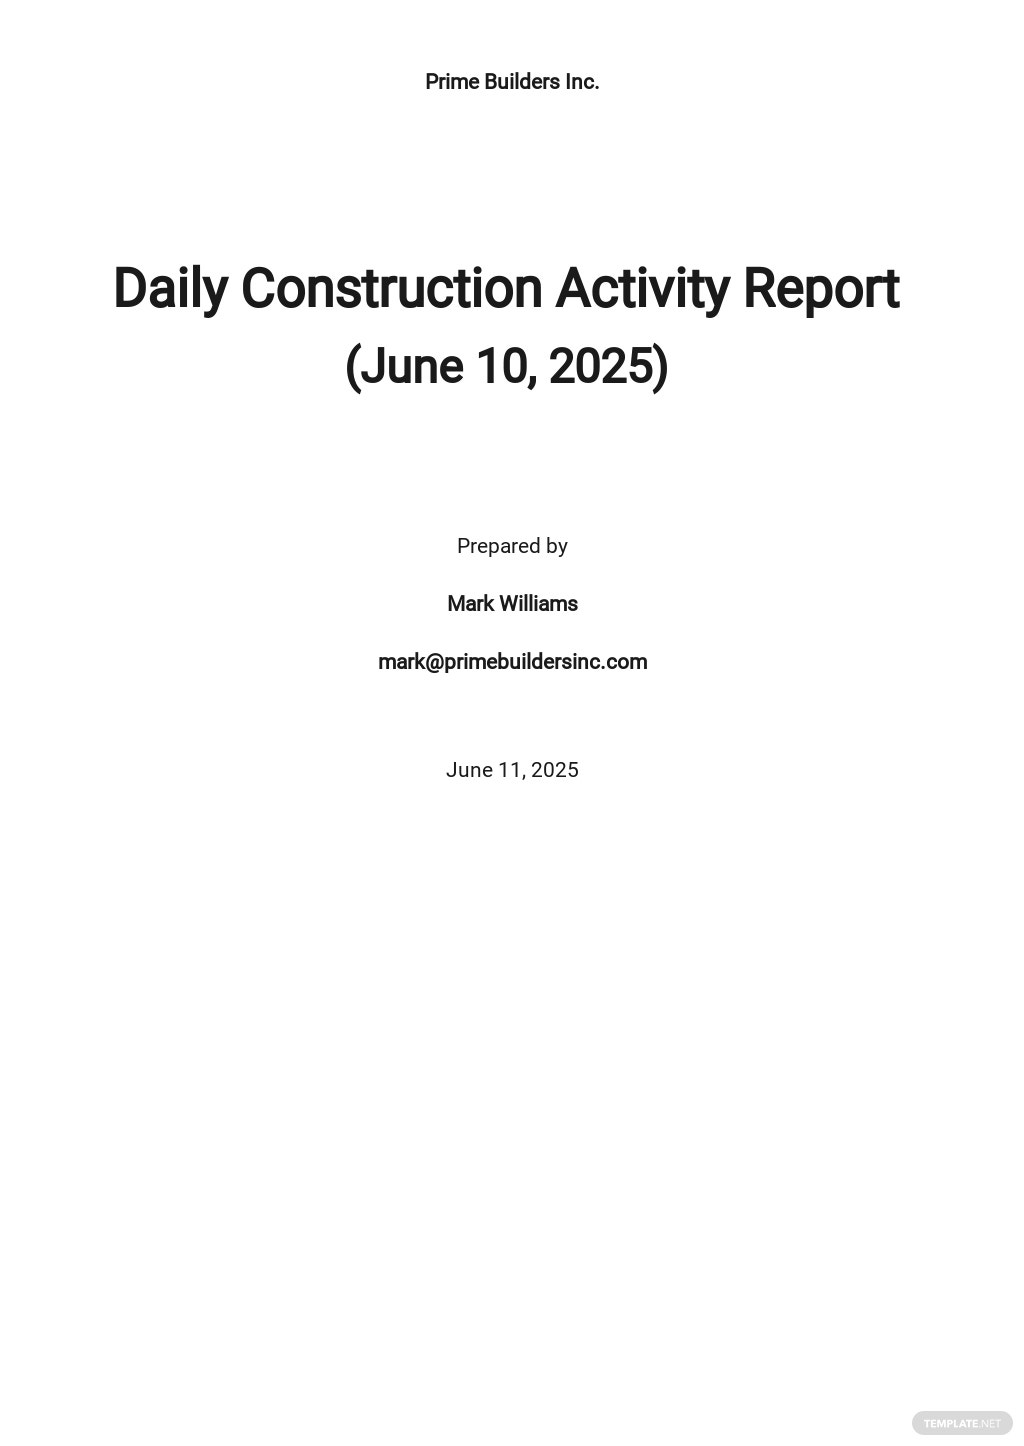 Daily Construction Activity Report Template